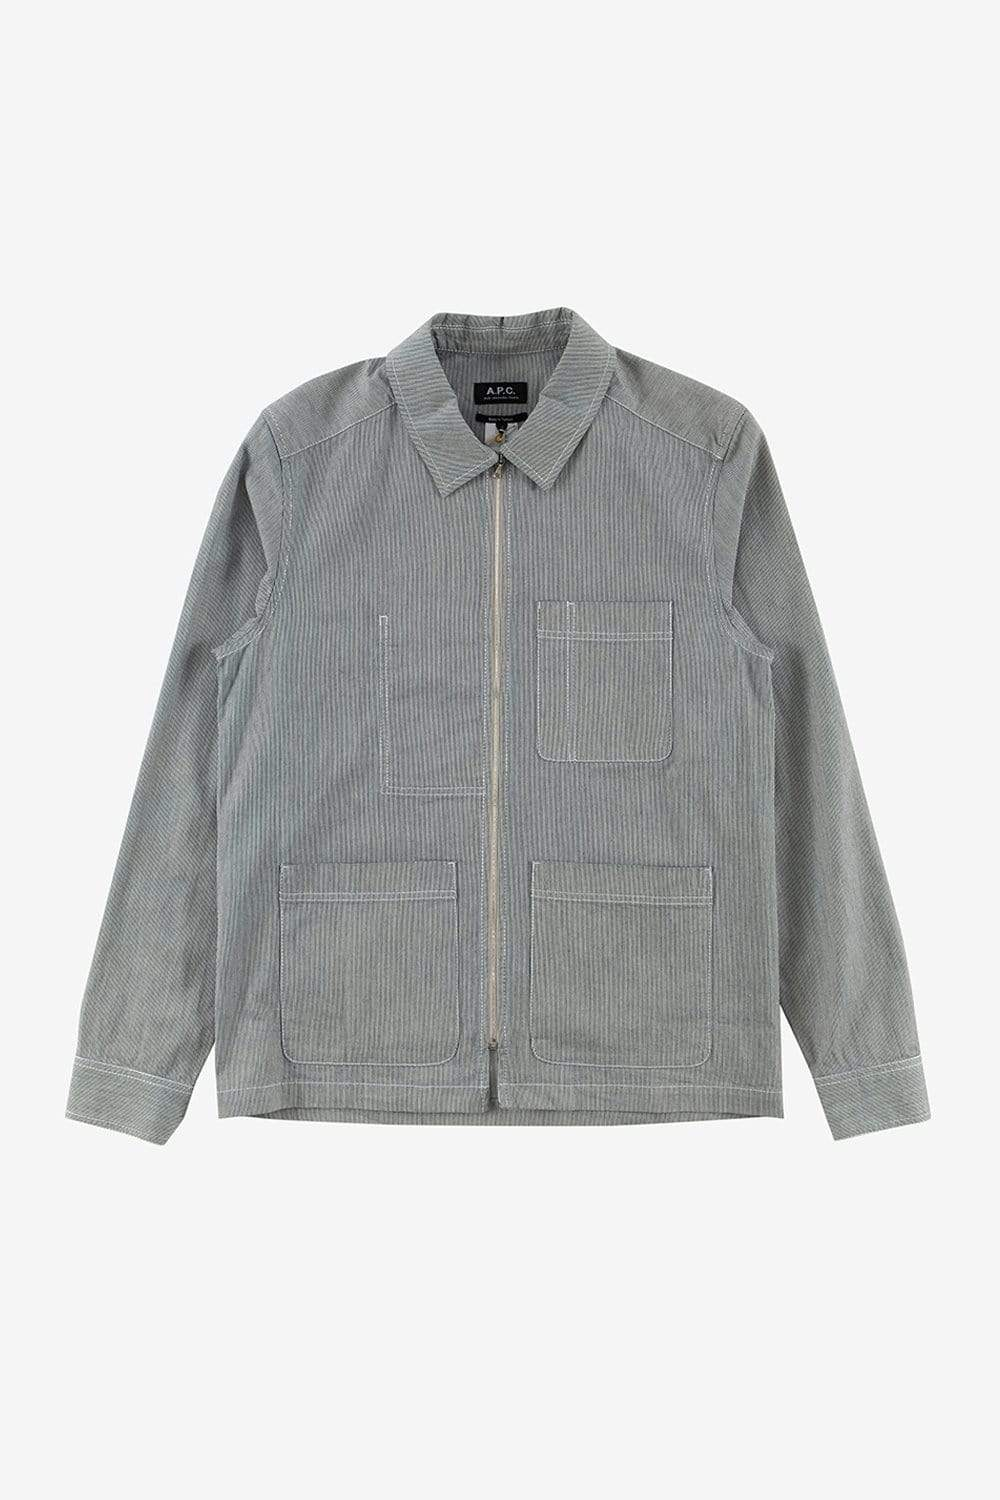 A.P.C. Apparel S Zip Jacket